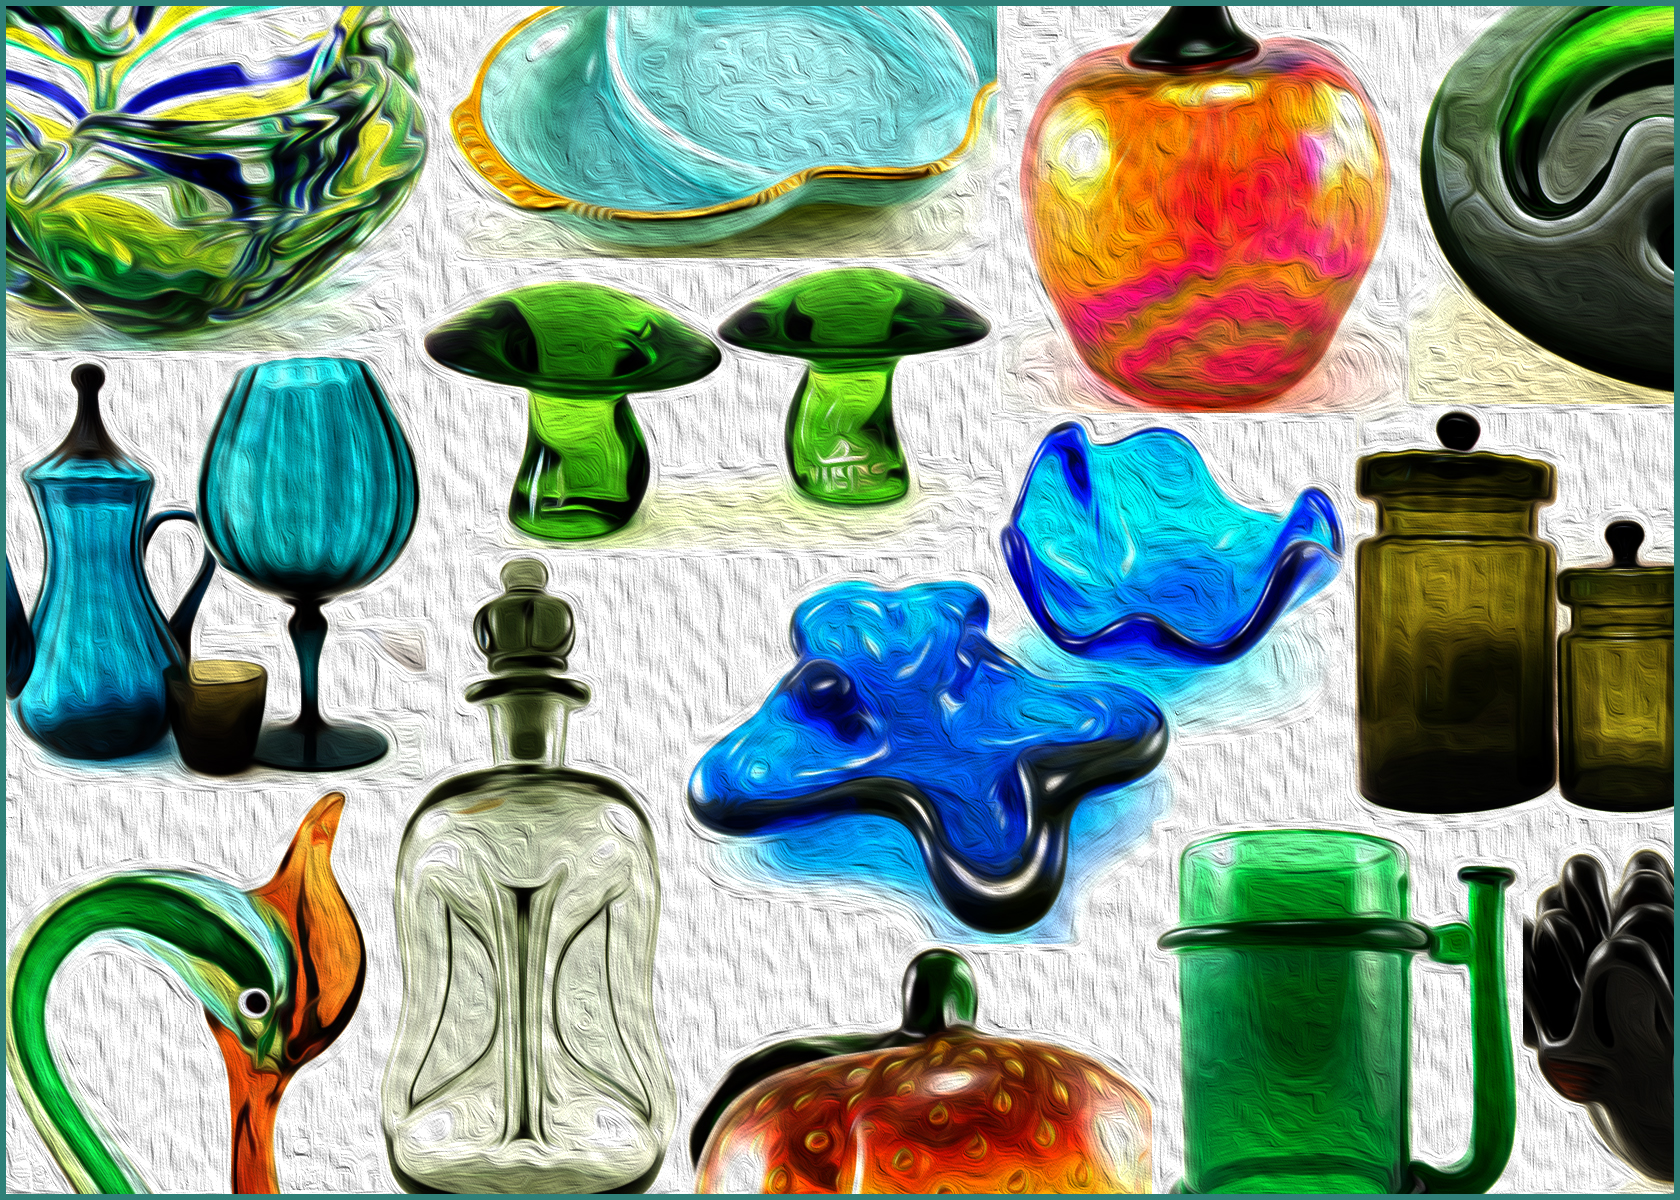 Retro Art Glass Retro Art Glass Offers a Large